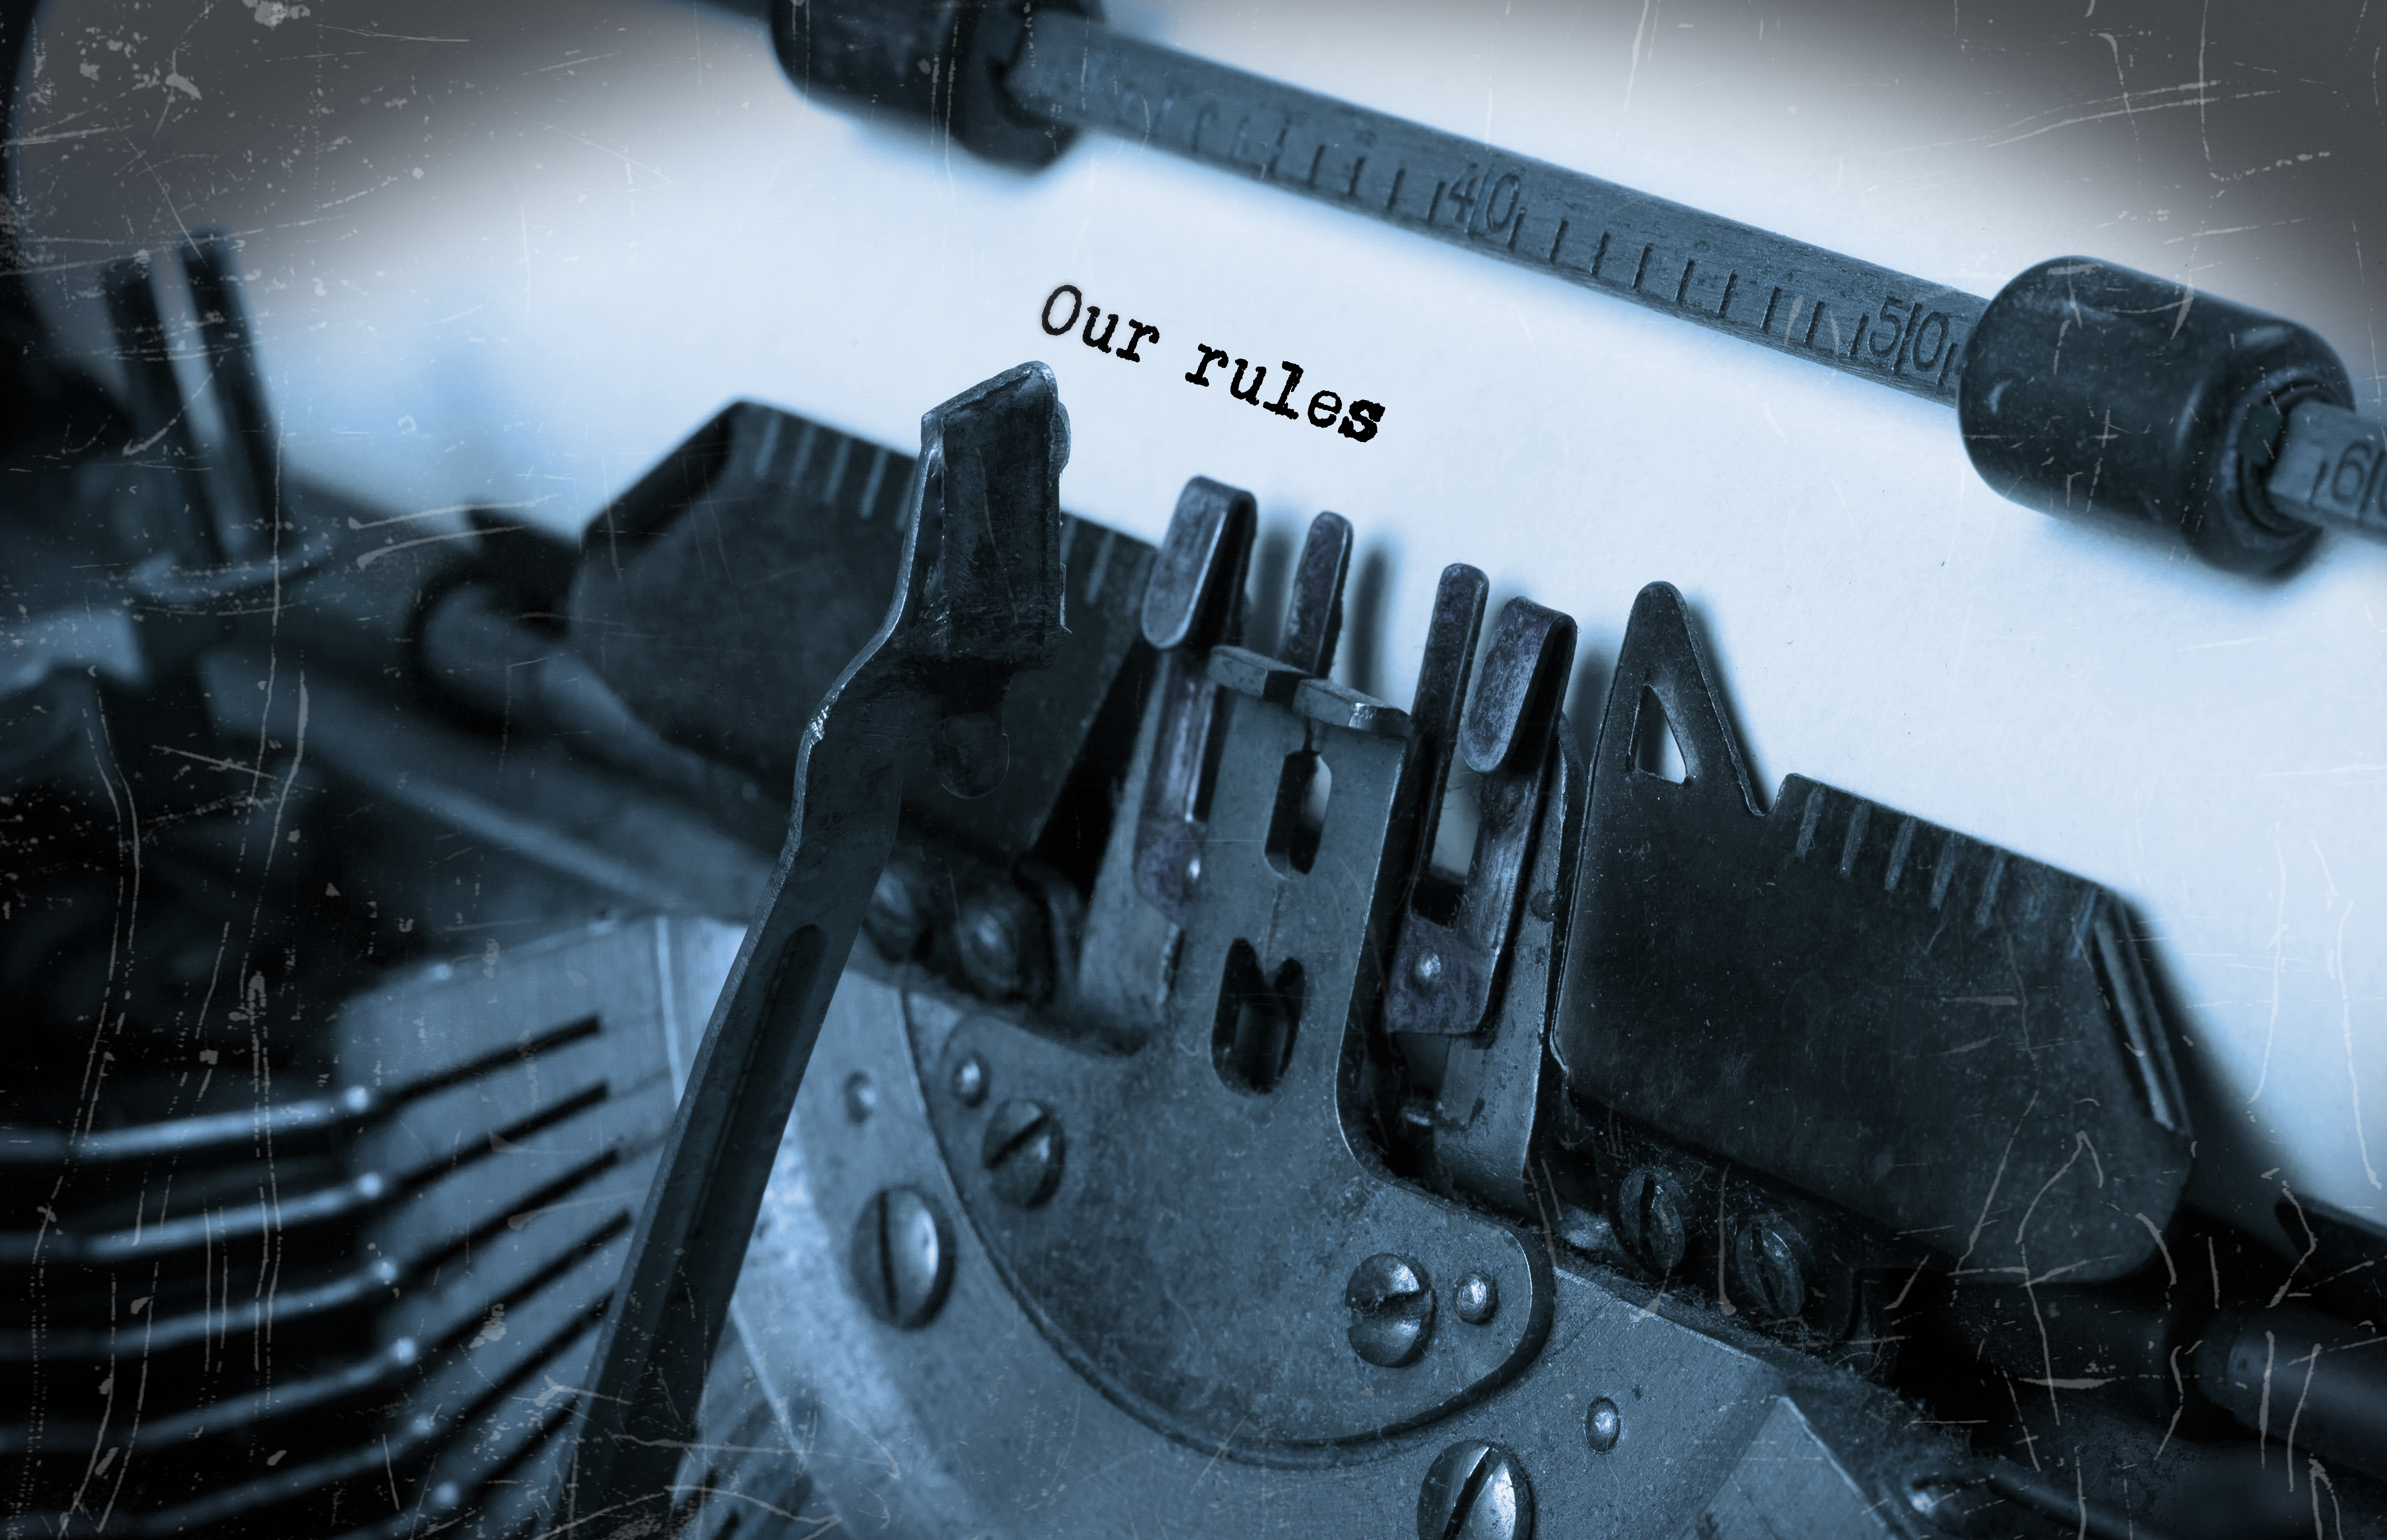 Our Rules Photo Istock